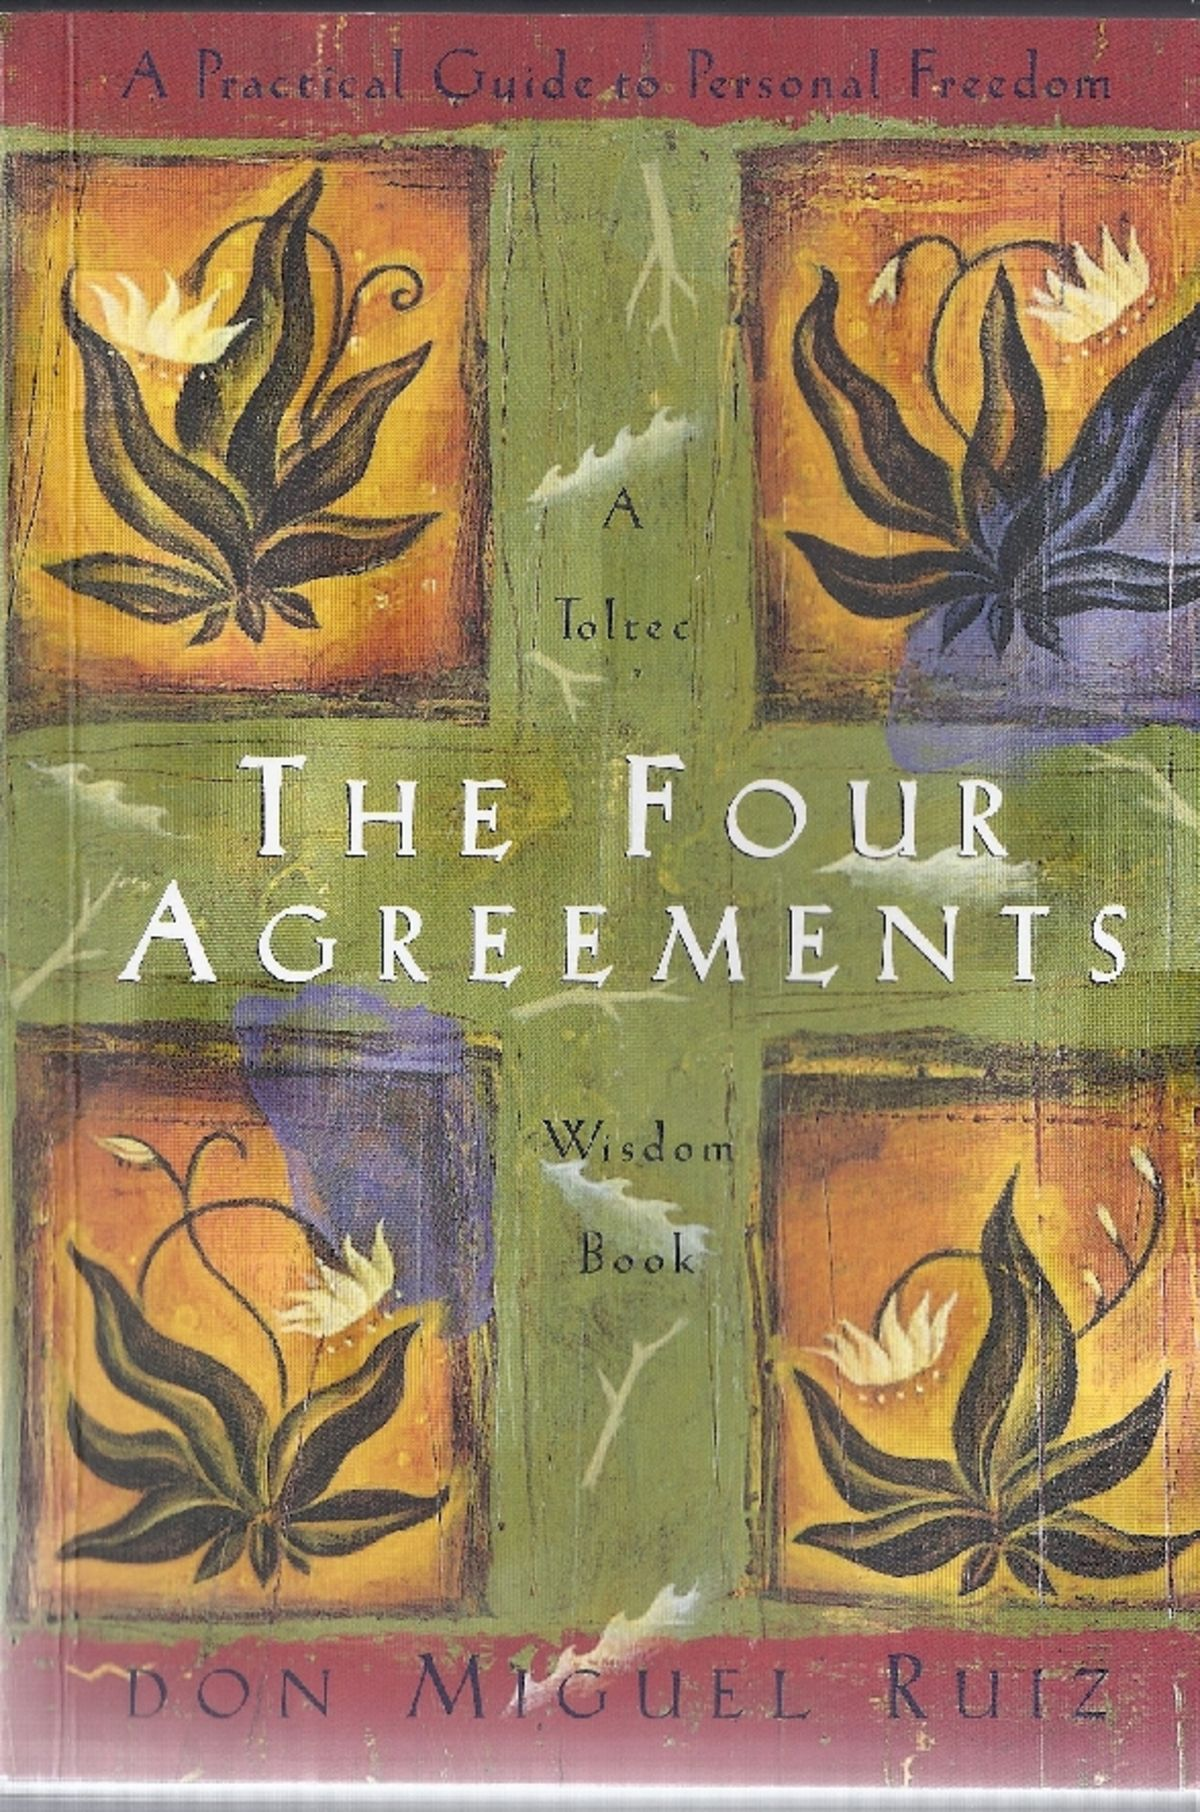 Agreeing with the Four Agreements | Psychology Today